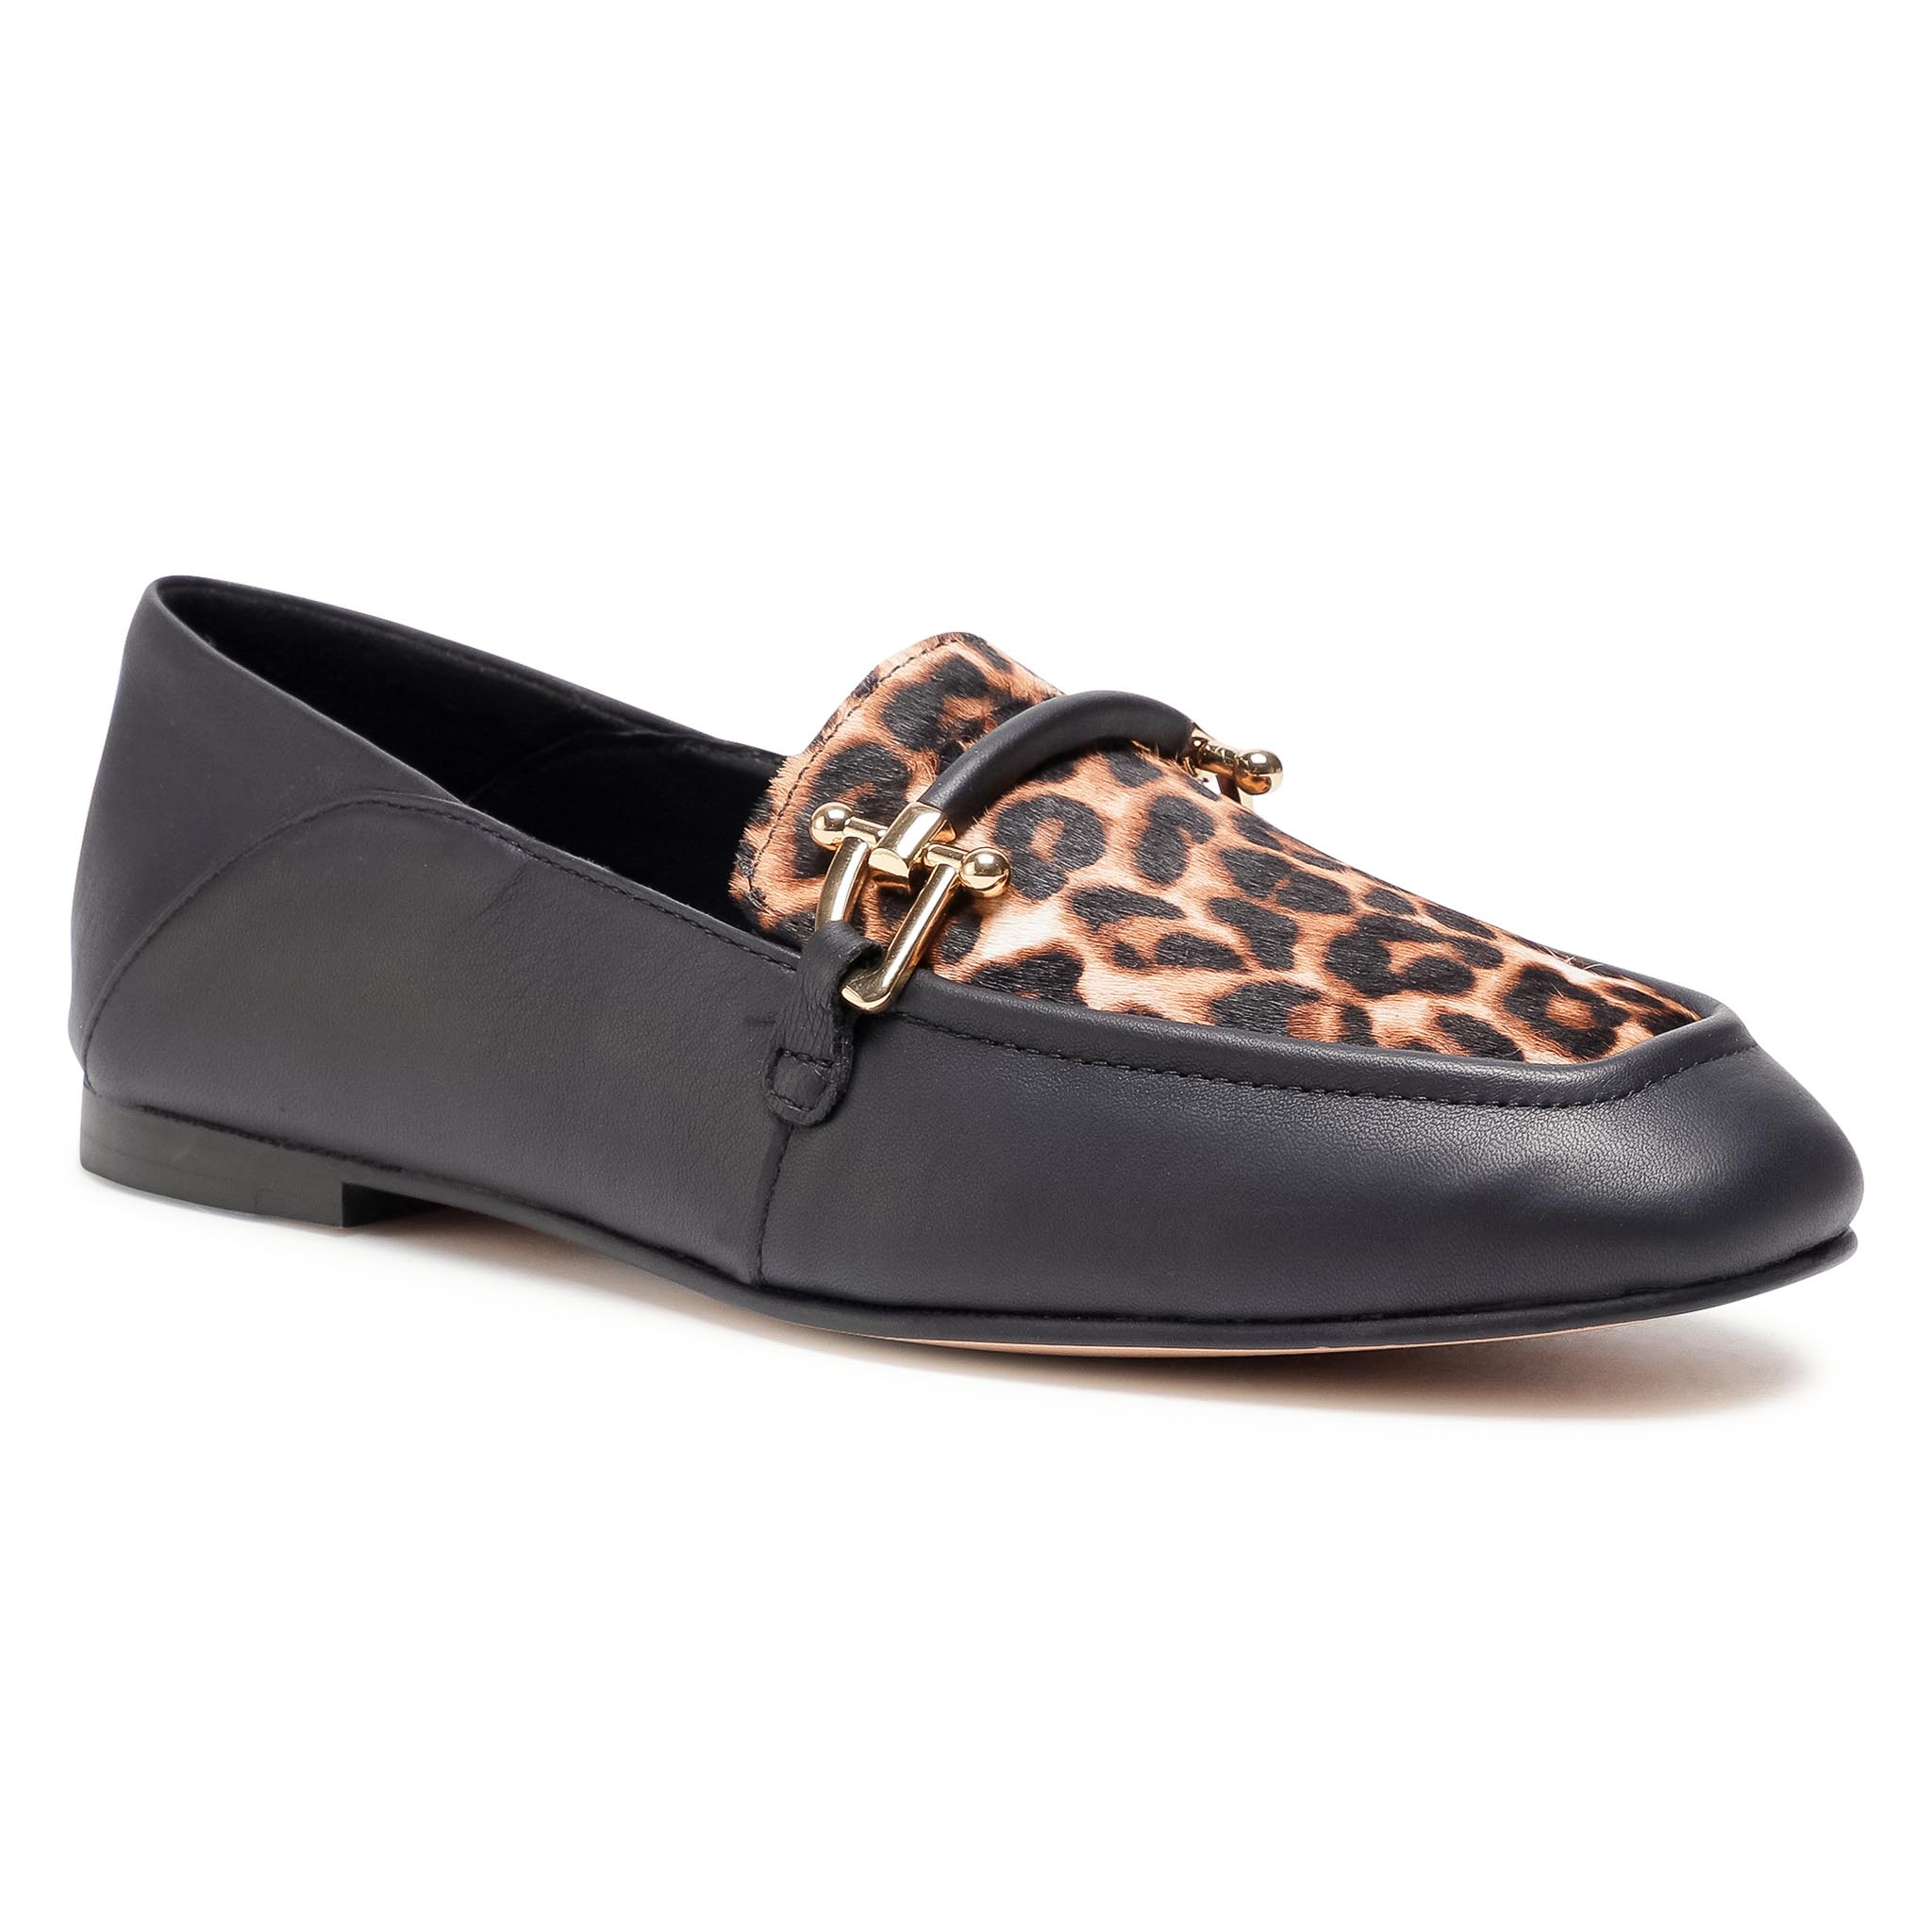 Lordsai CLARKS - Pure2 Loafer 261542064 Leopard Print